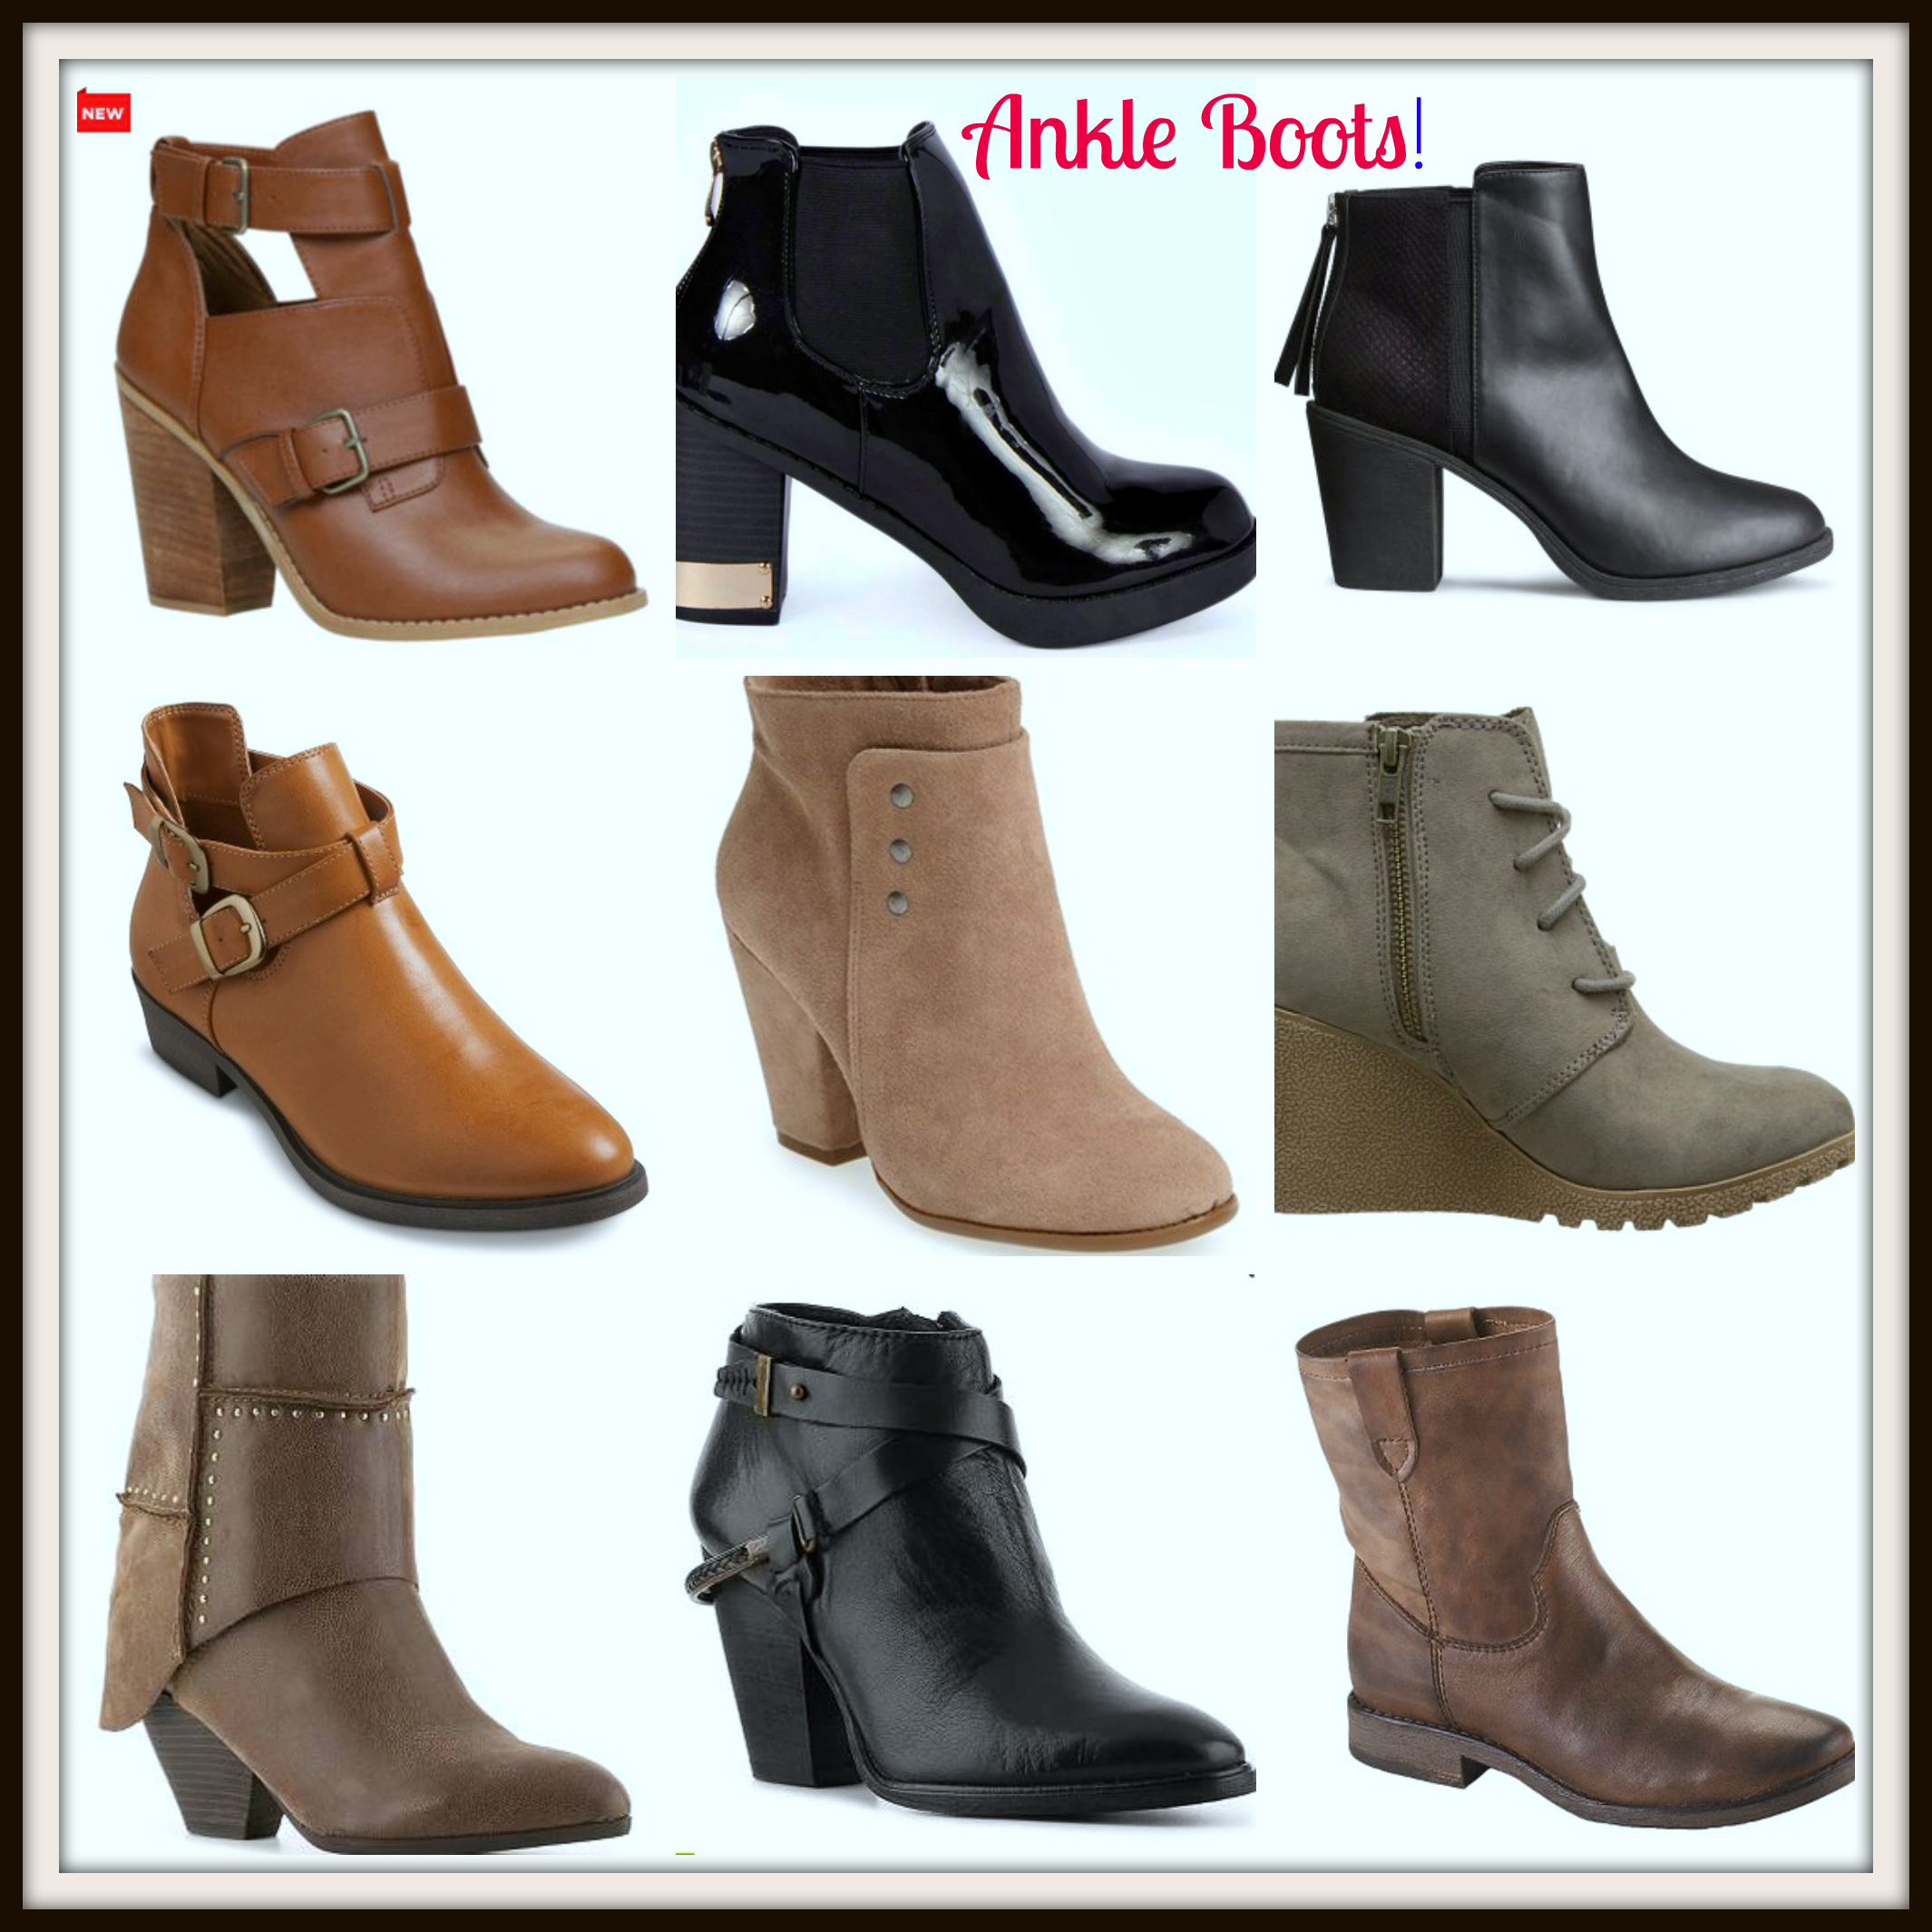 Best Ankle Boots aRDkjwah